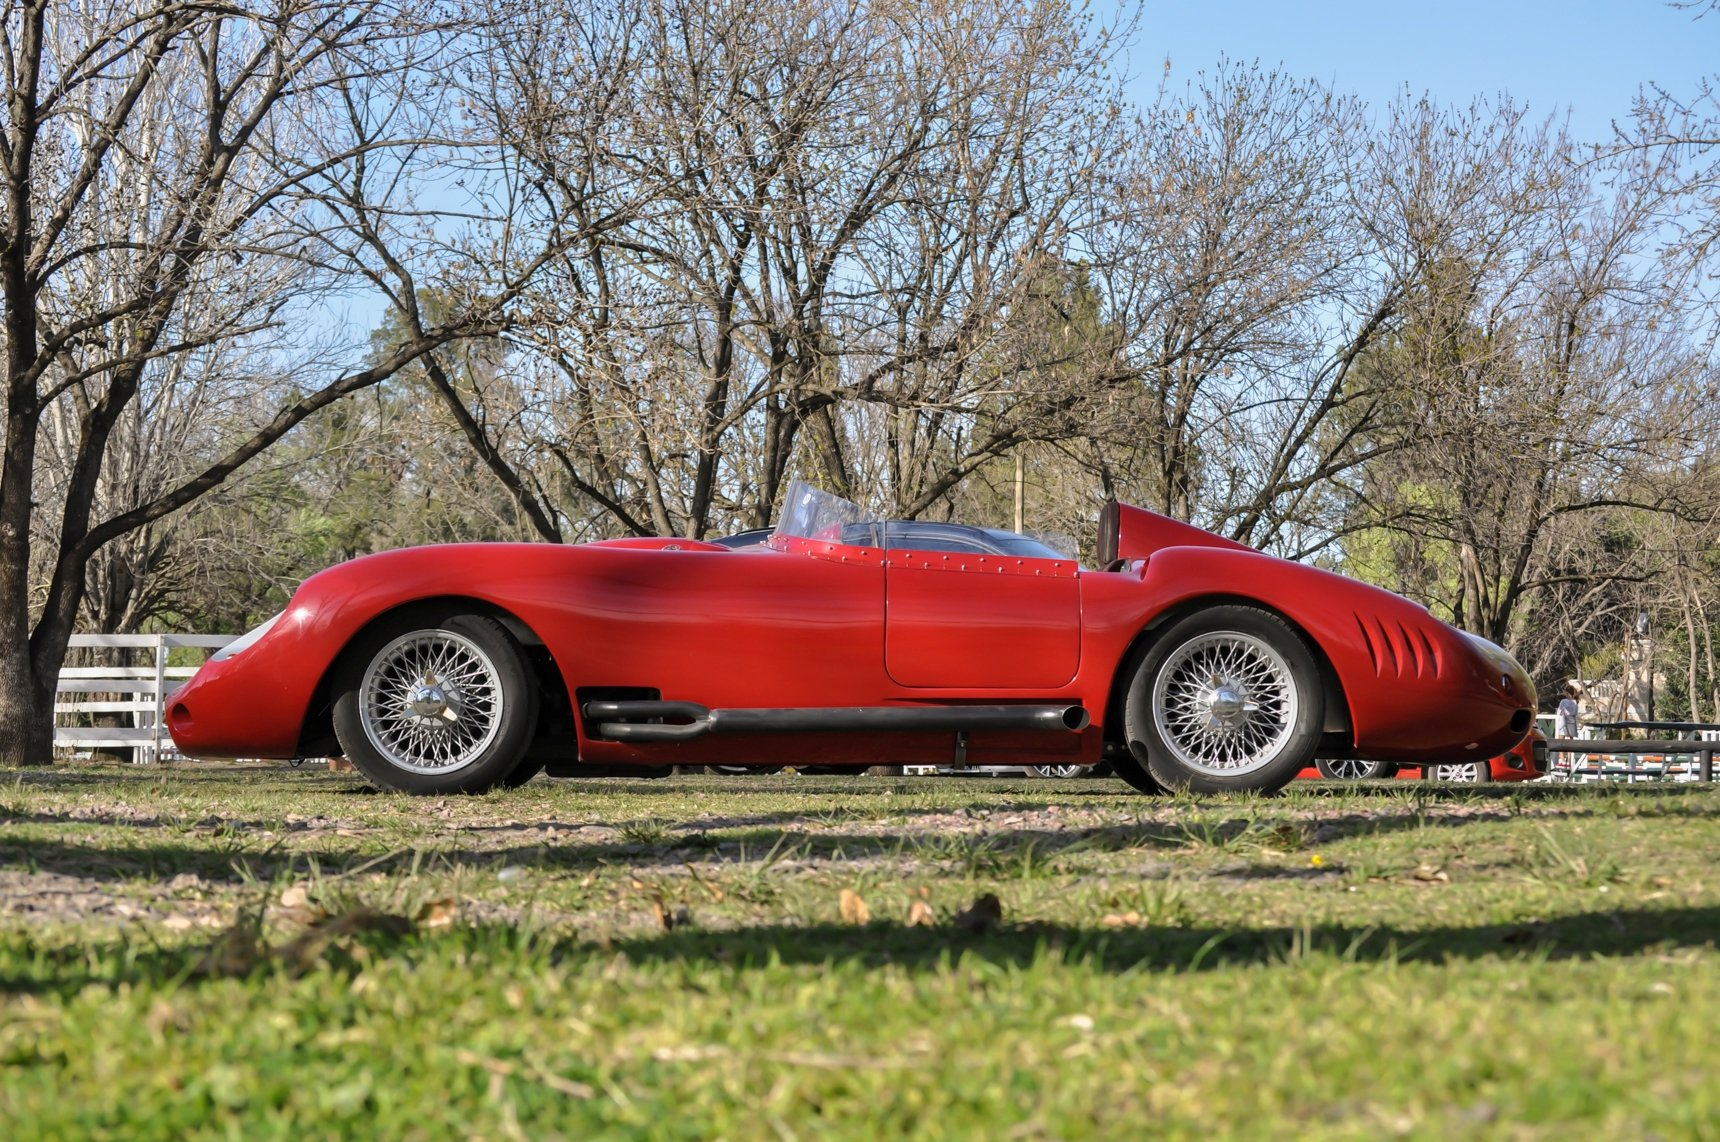 1957 Maserati 450S V8 (Recreation) For Sale (picture 2 of 6)